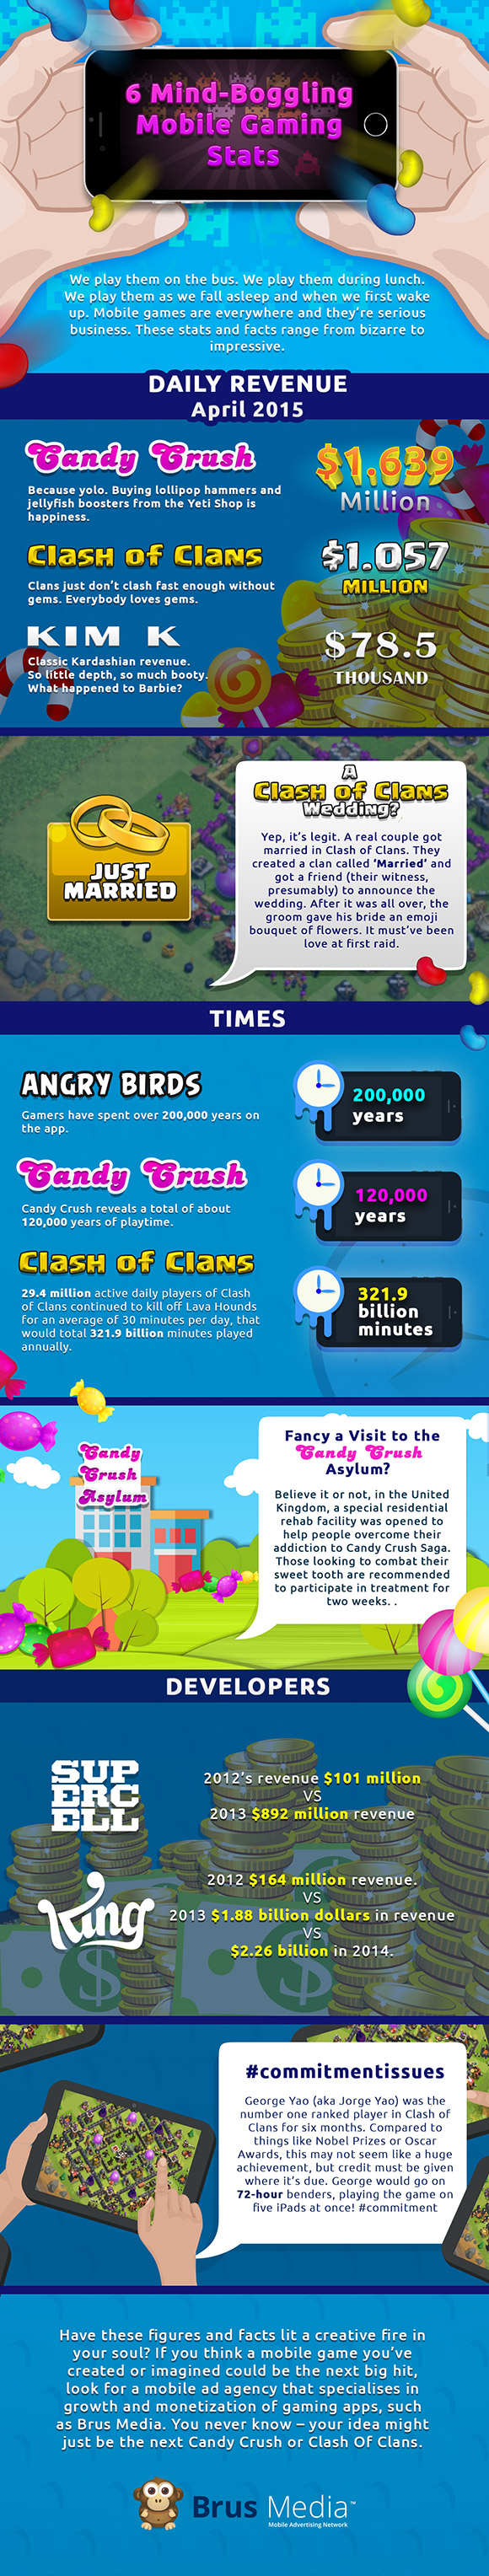 Check Out Some Mind boggling Mobile Gaming Stats From Brus Media